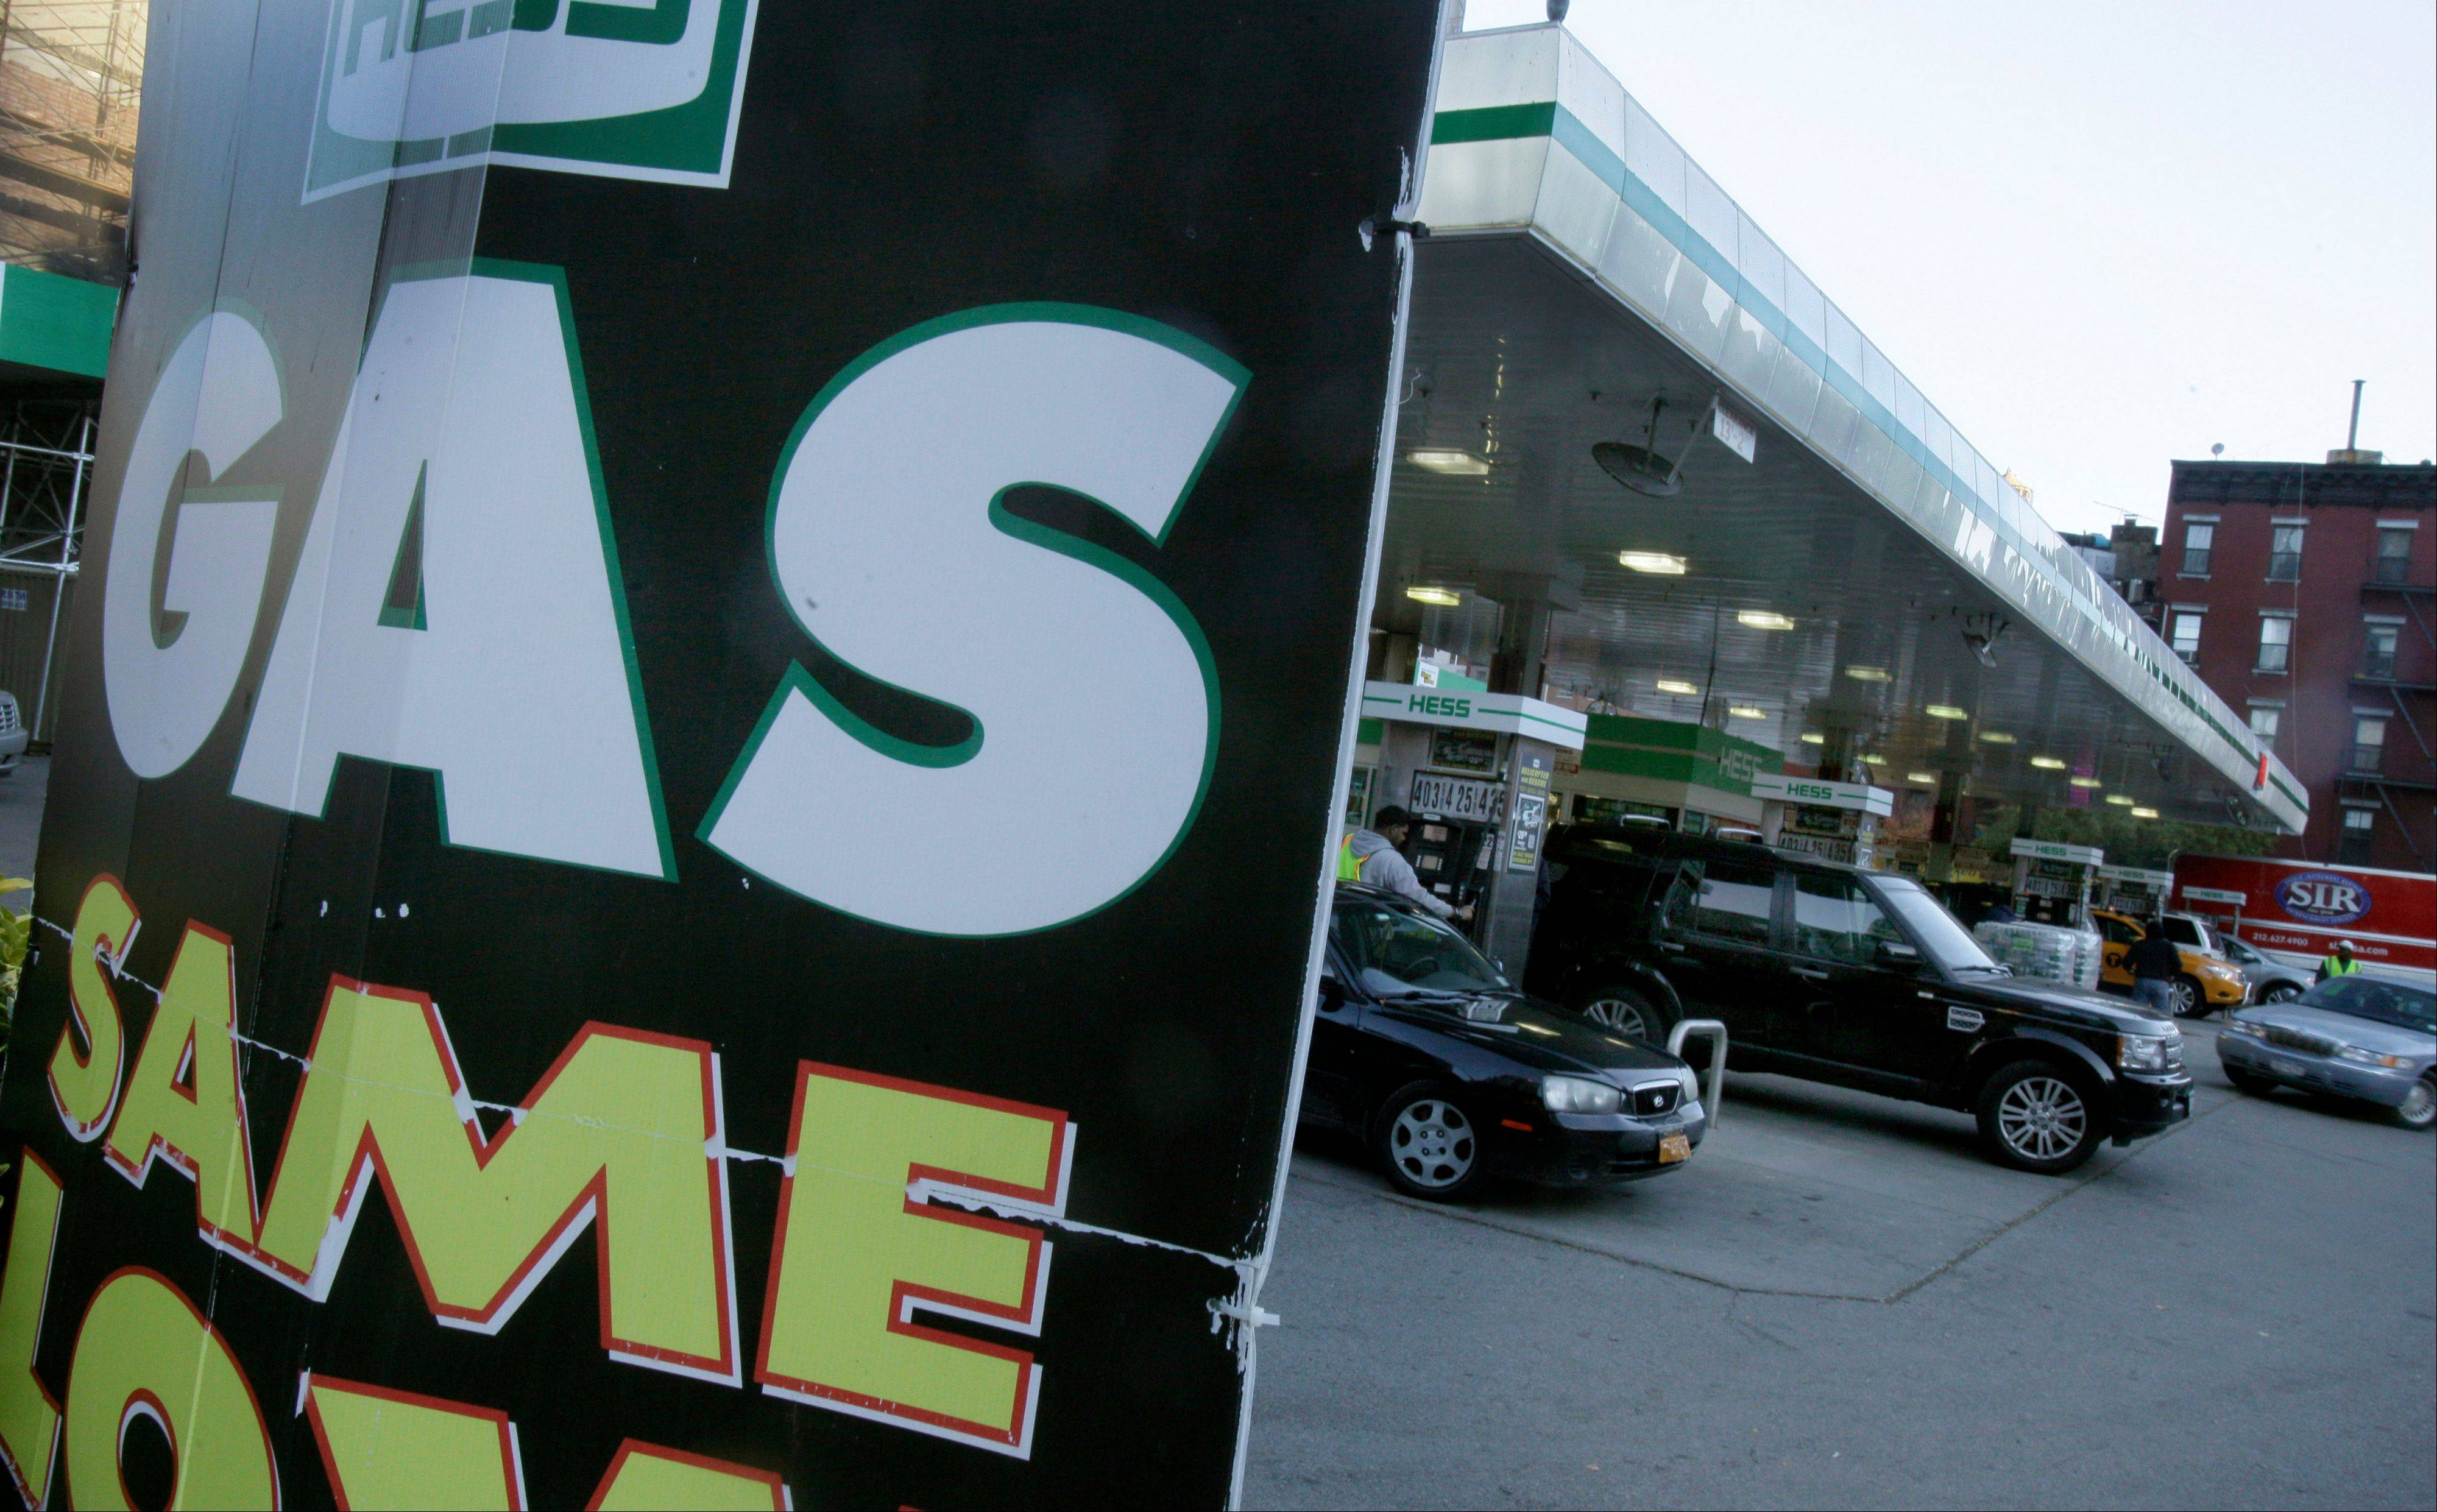 Drivers fill-up at a station in New York, Friday, Nov. 9, 2012. A new gasoline rationing plan that lets motorists fill up every other day went into effect in New York on Friday morning. Police were at gas stations to enforce the new system in New York City and on Long Island.